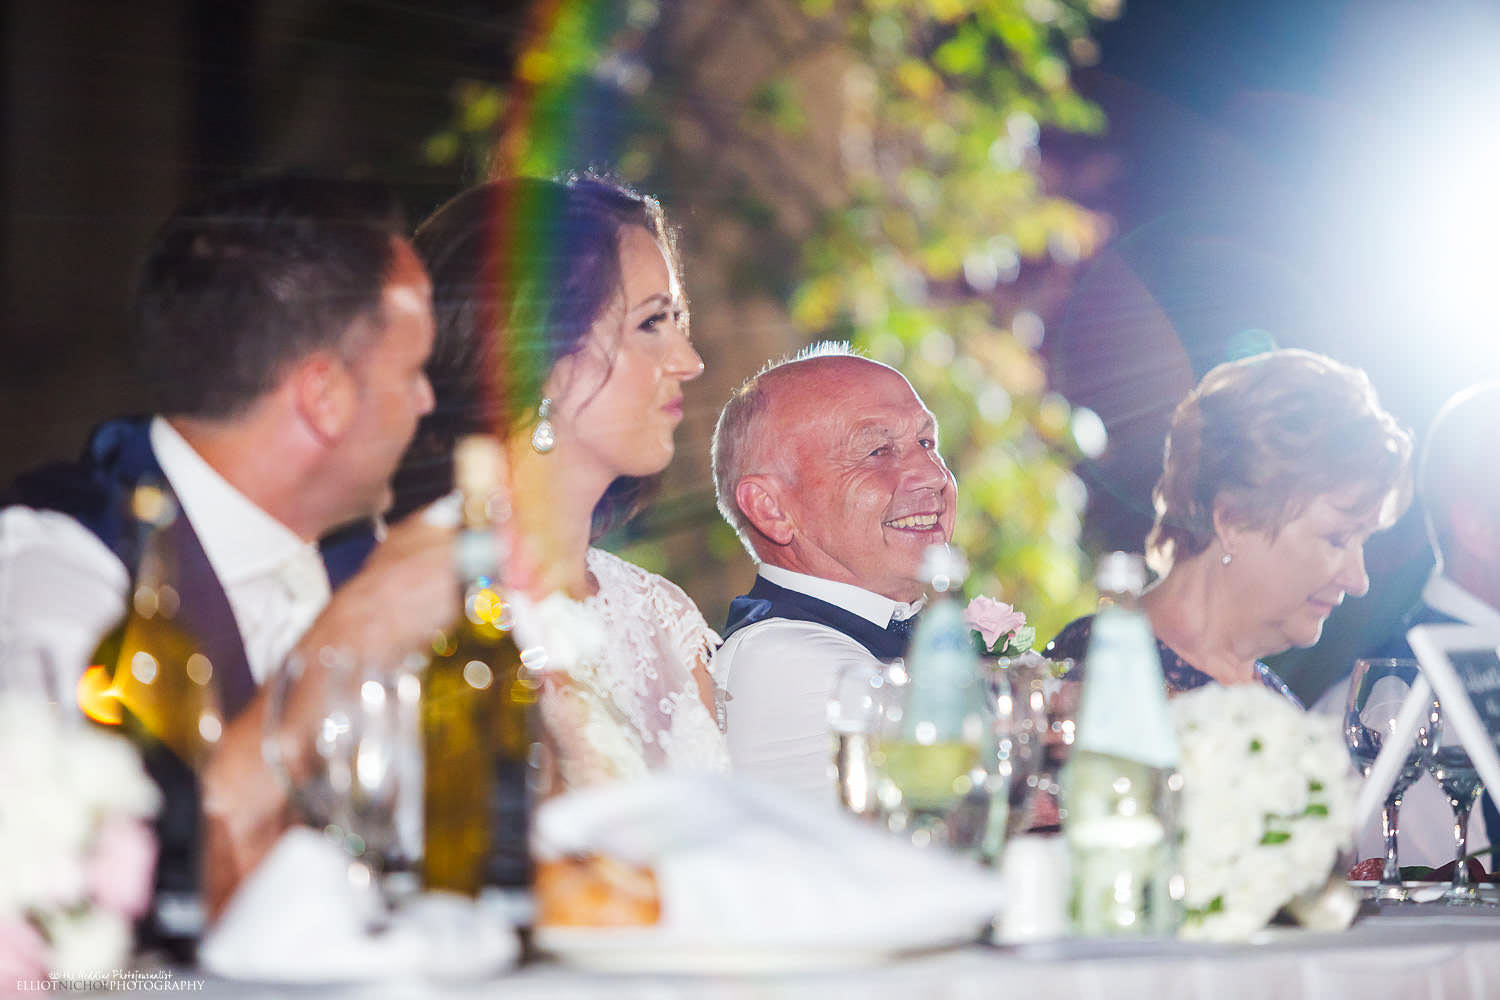 top tables reaction to speeches during the wedding reception